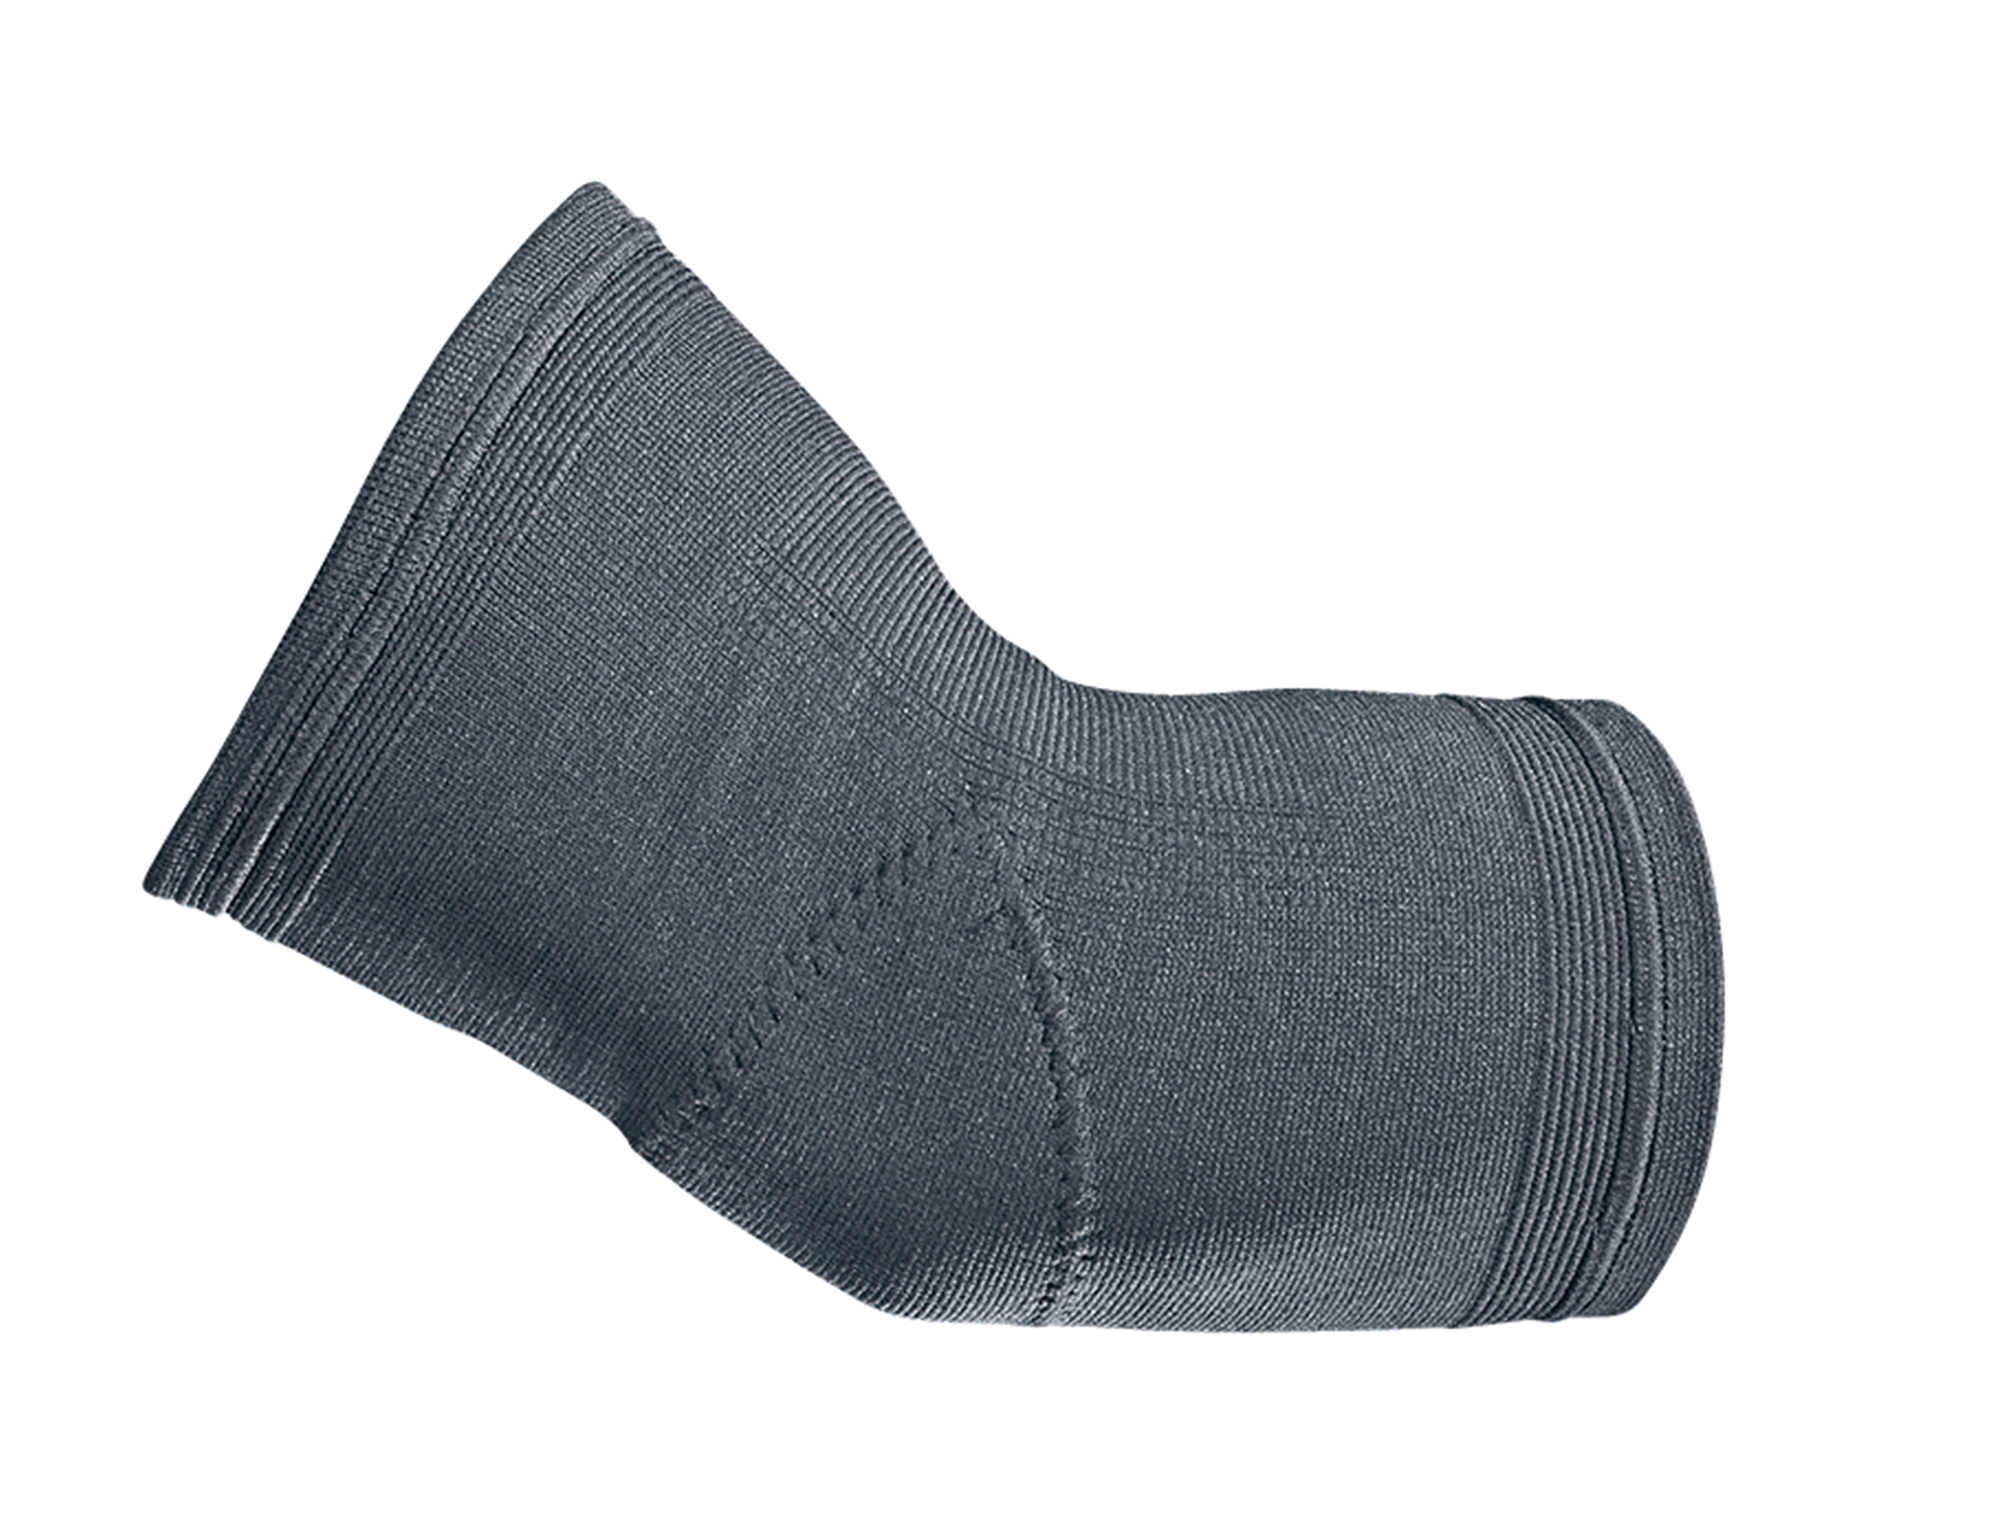 0051131208957 - ACE(TM) COMPRESSION ELBOW SUPPORT LARGE/EXTRA LARGE